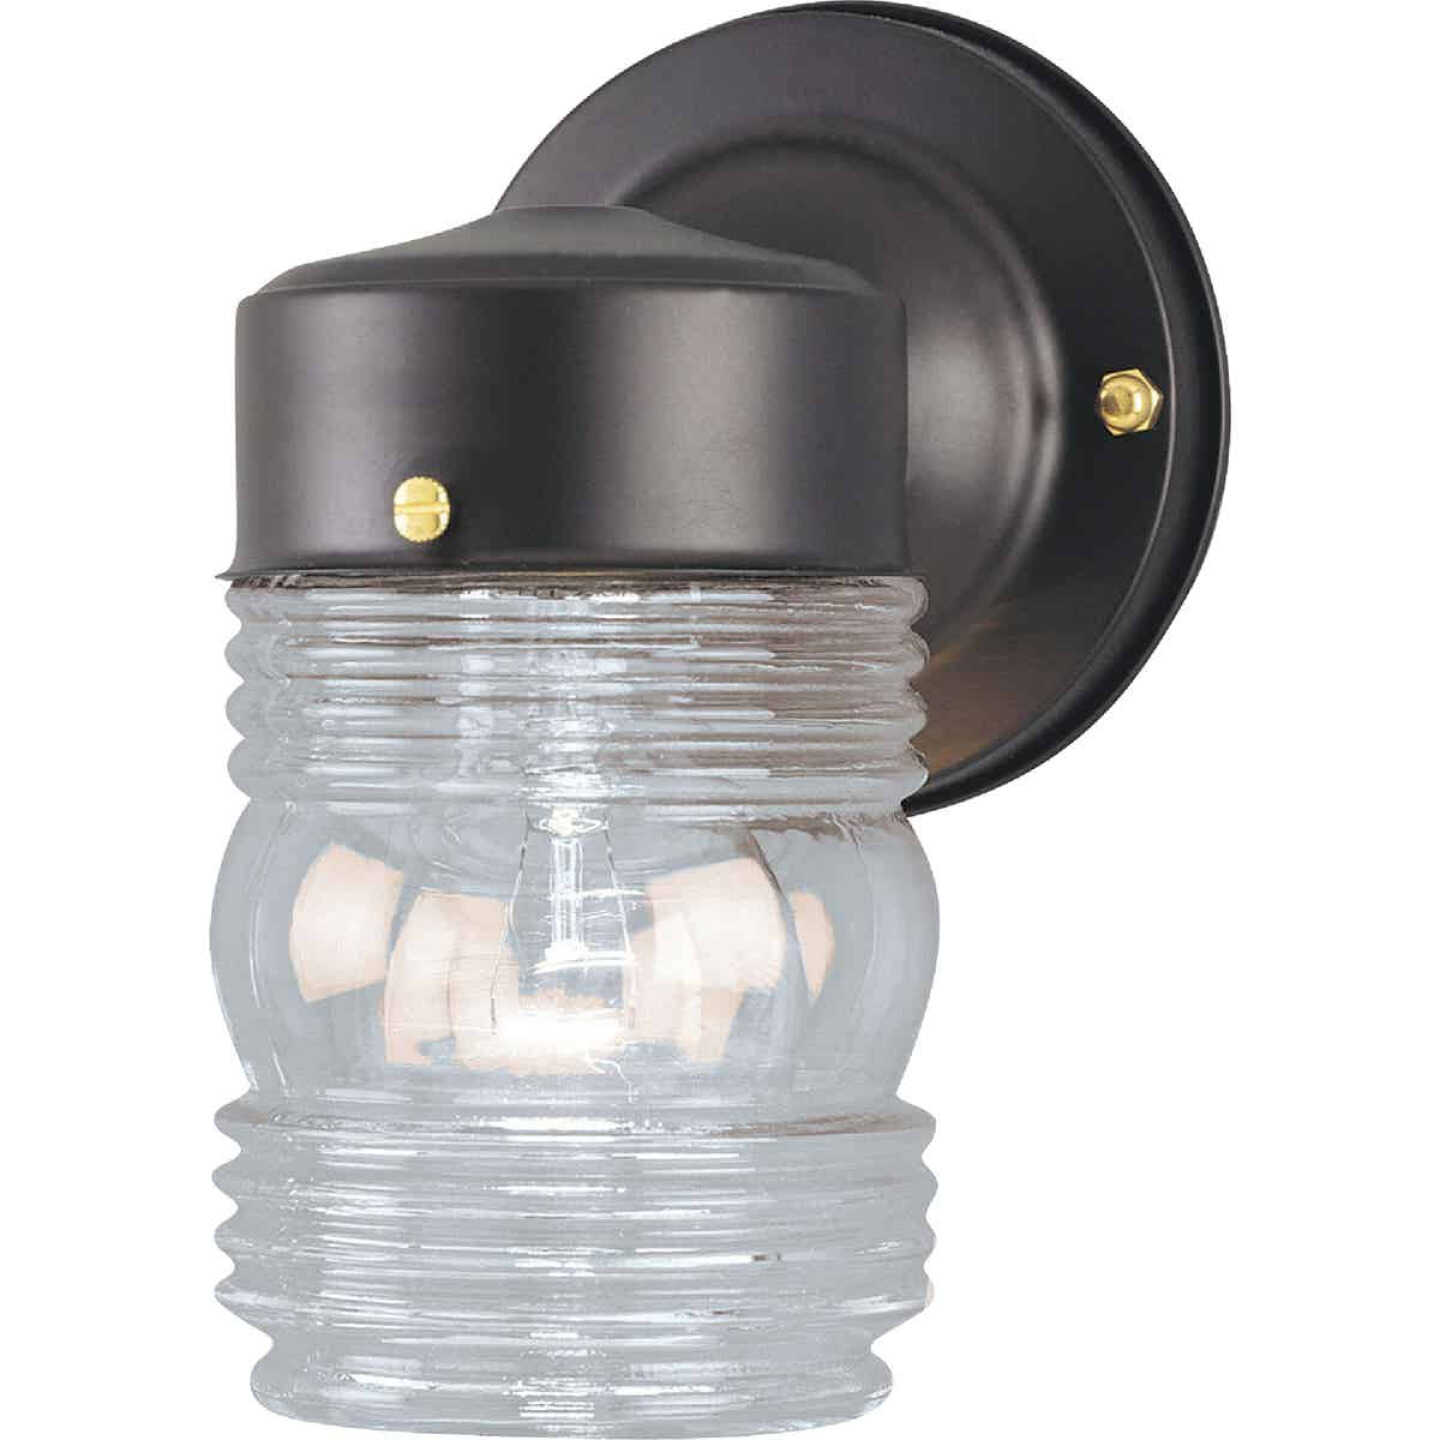 Home Impressions Black Incandescent Type A Outdoor Wall Light Fixture Image 1